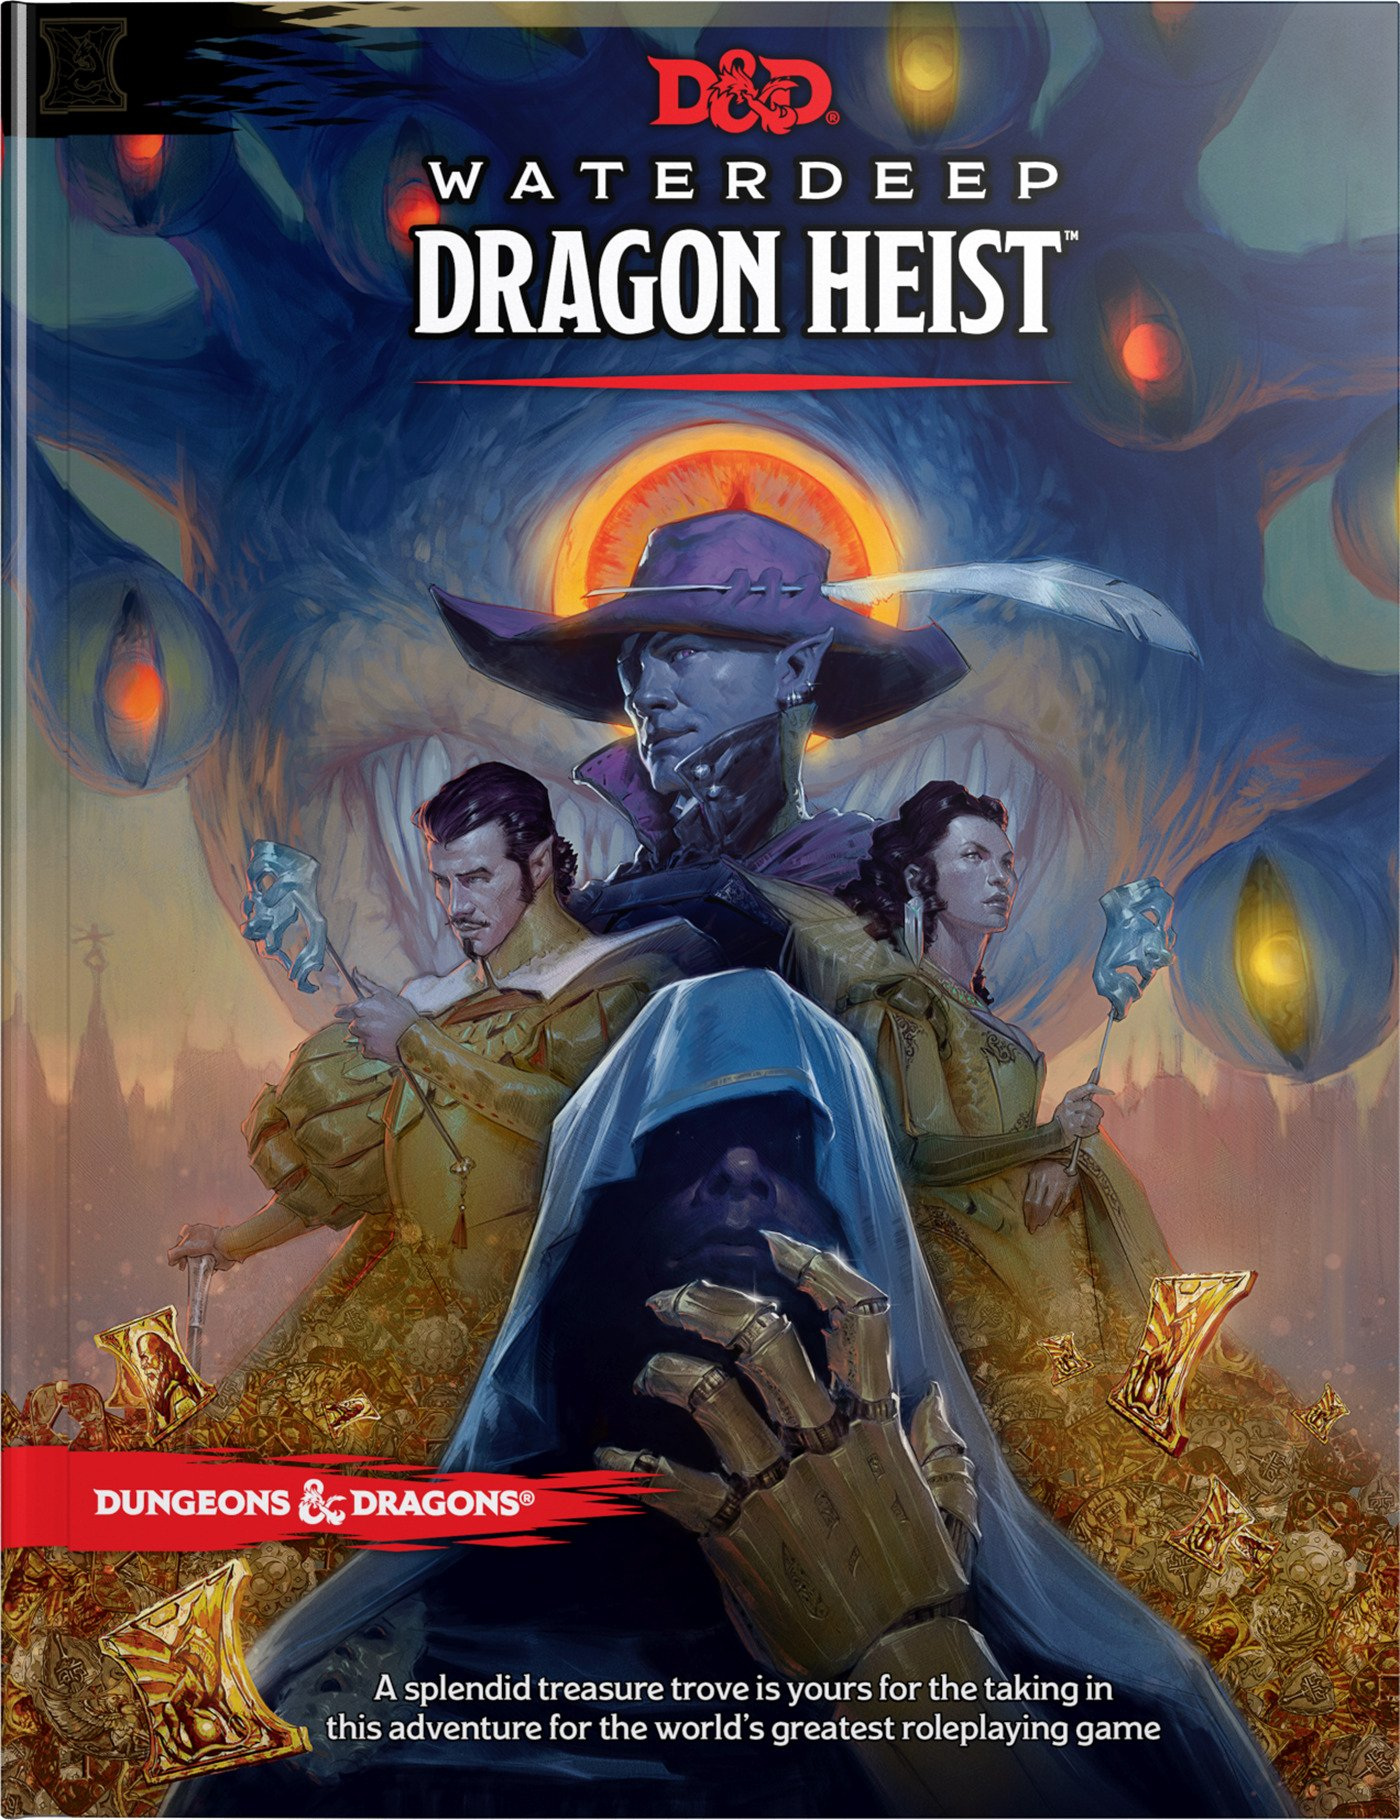 Review: D&D's latest adventure is state of the art tabletop